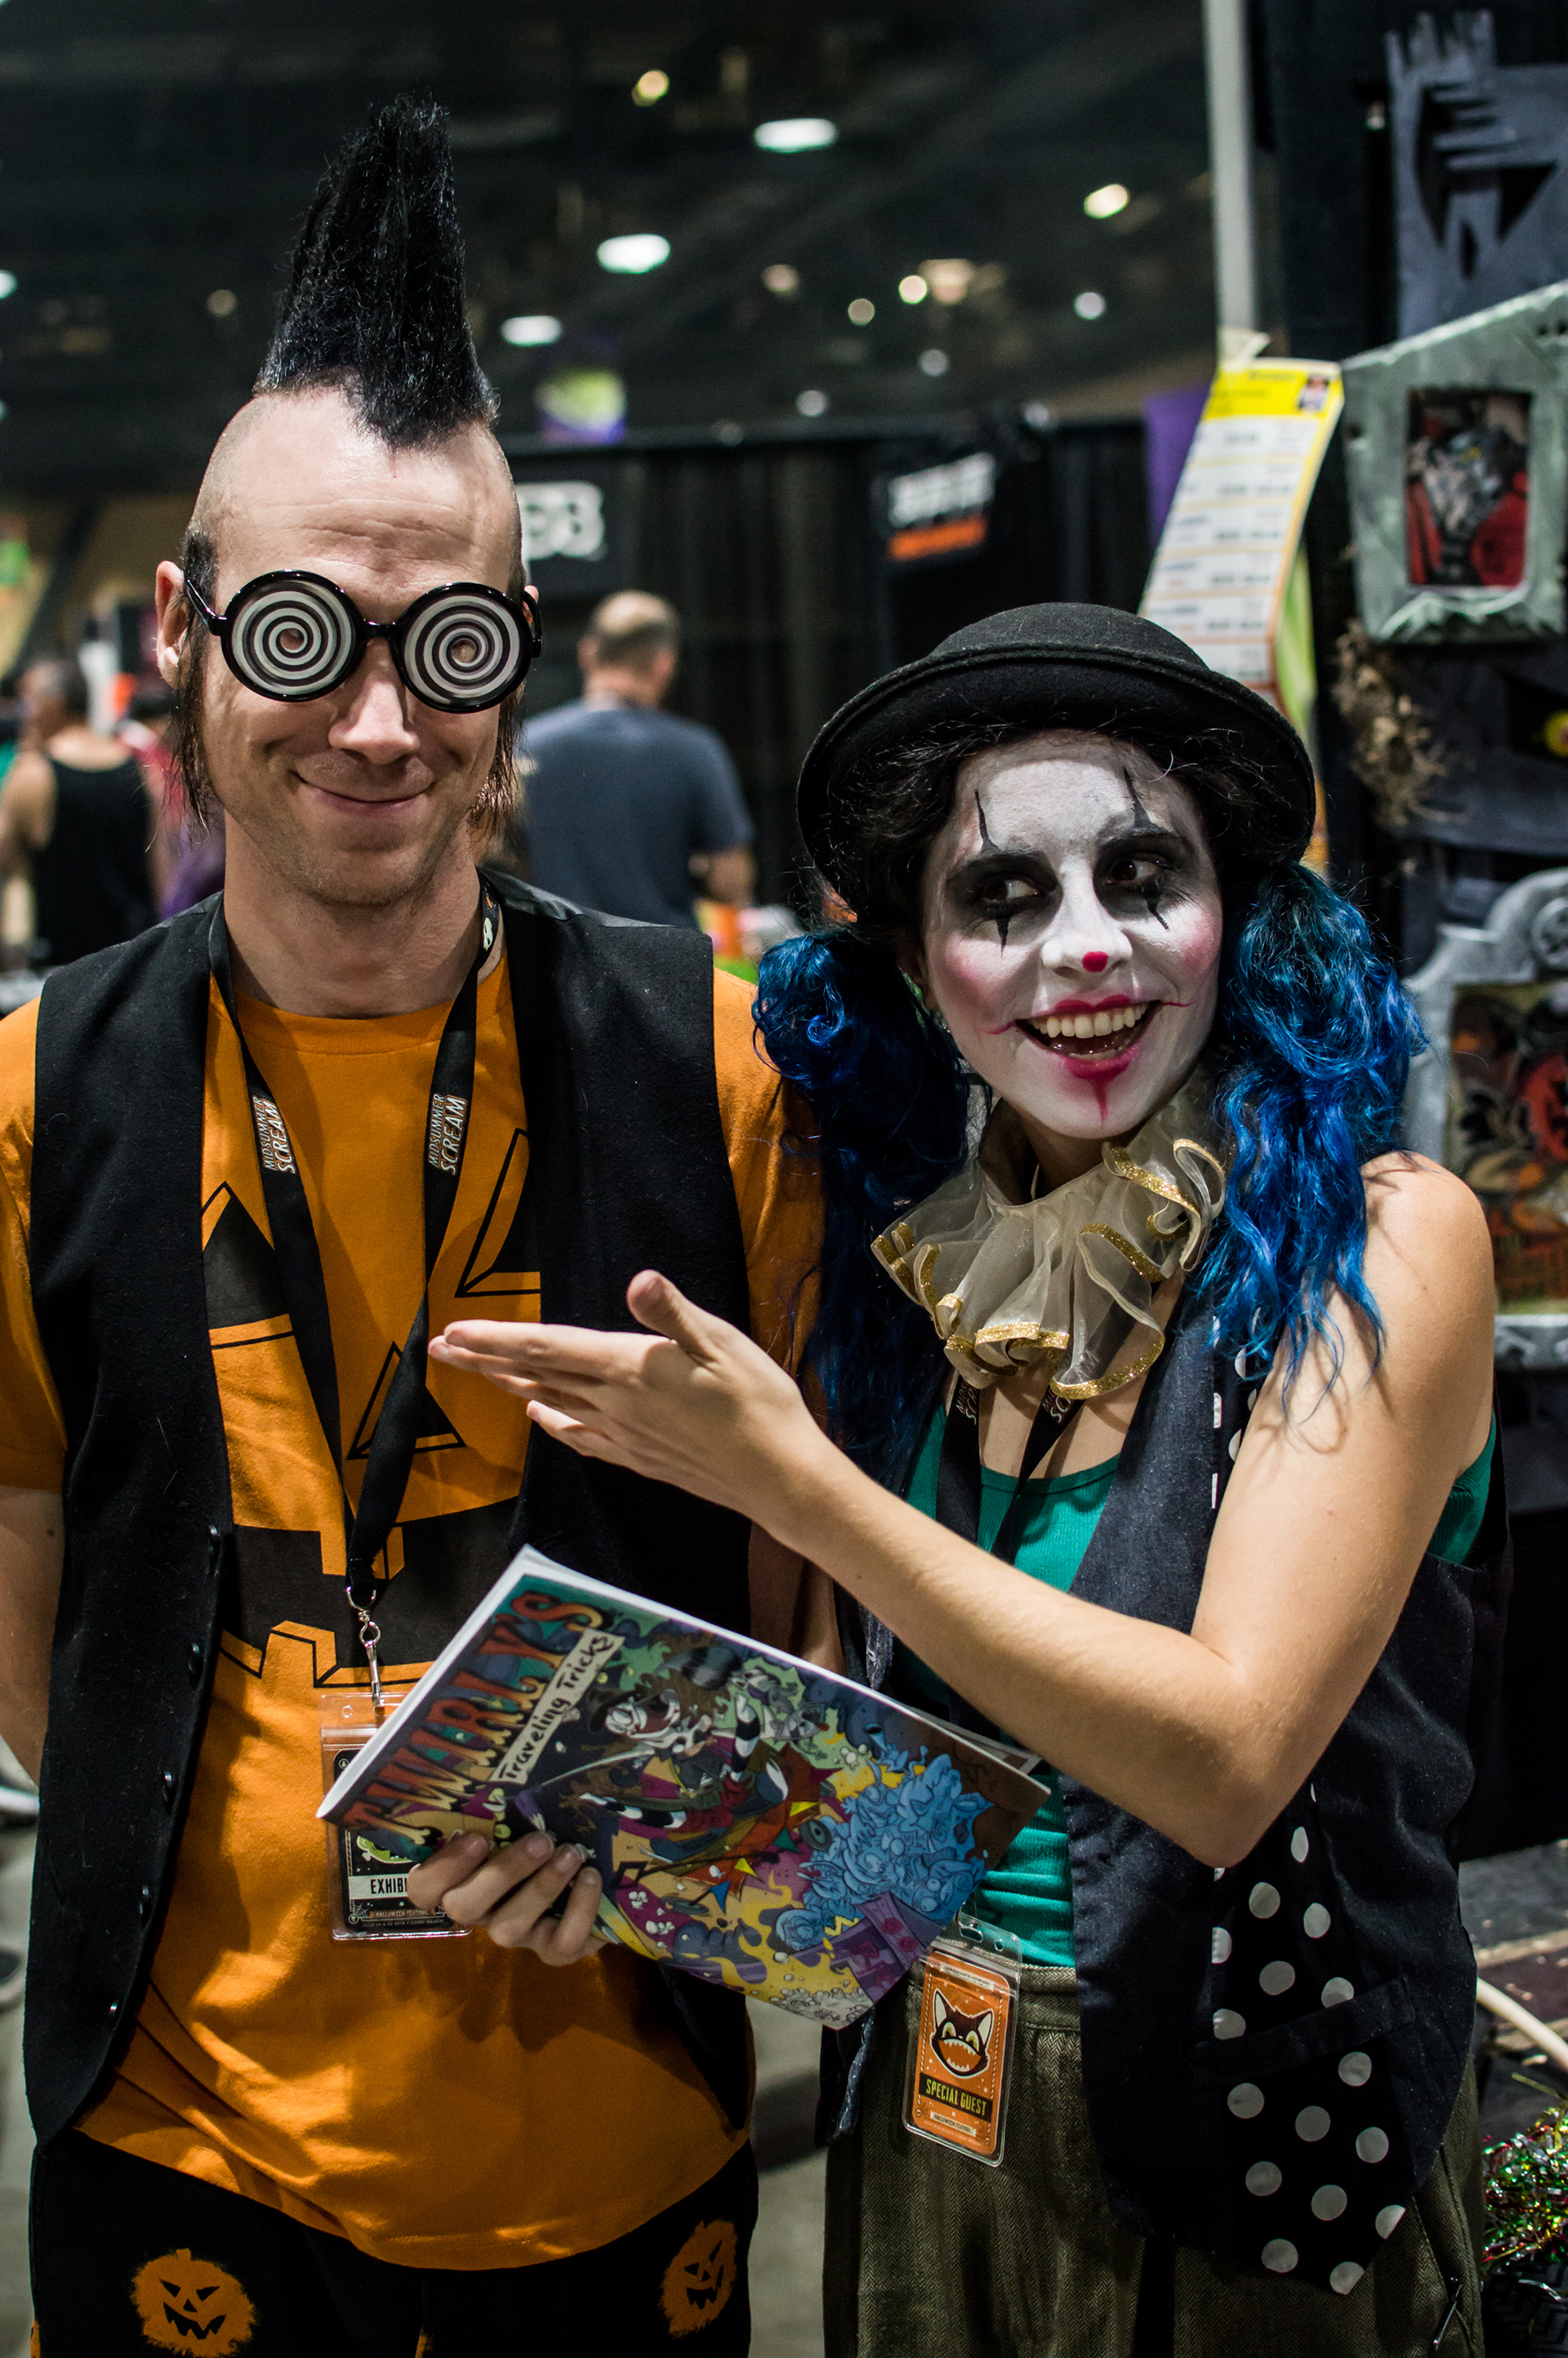 (Photo by Chris Husby, courtesy of Midsummer Scream.)